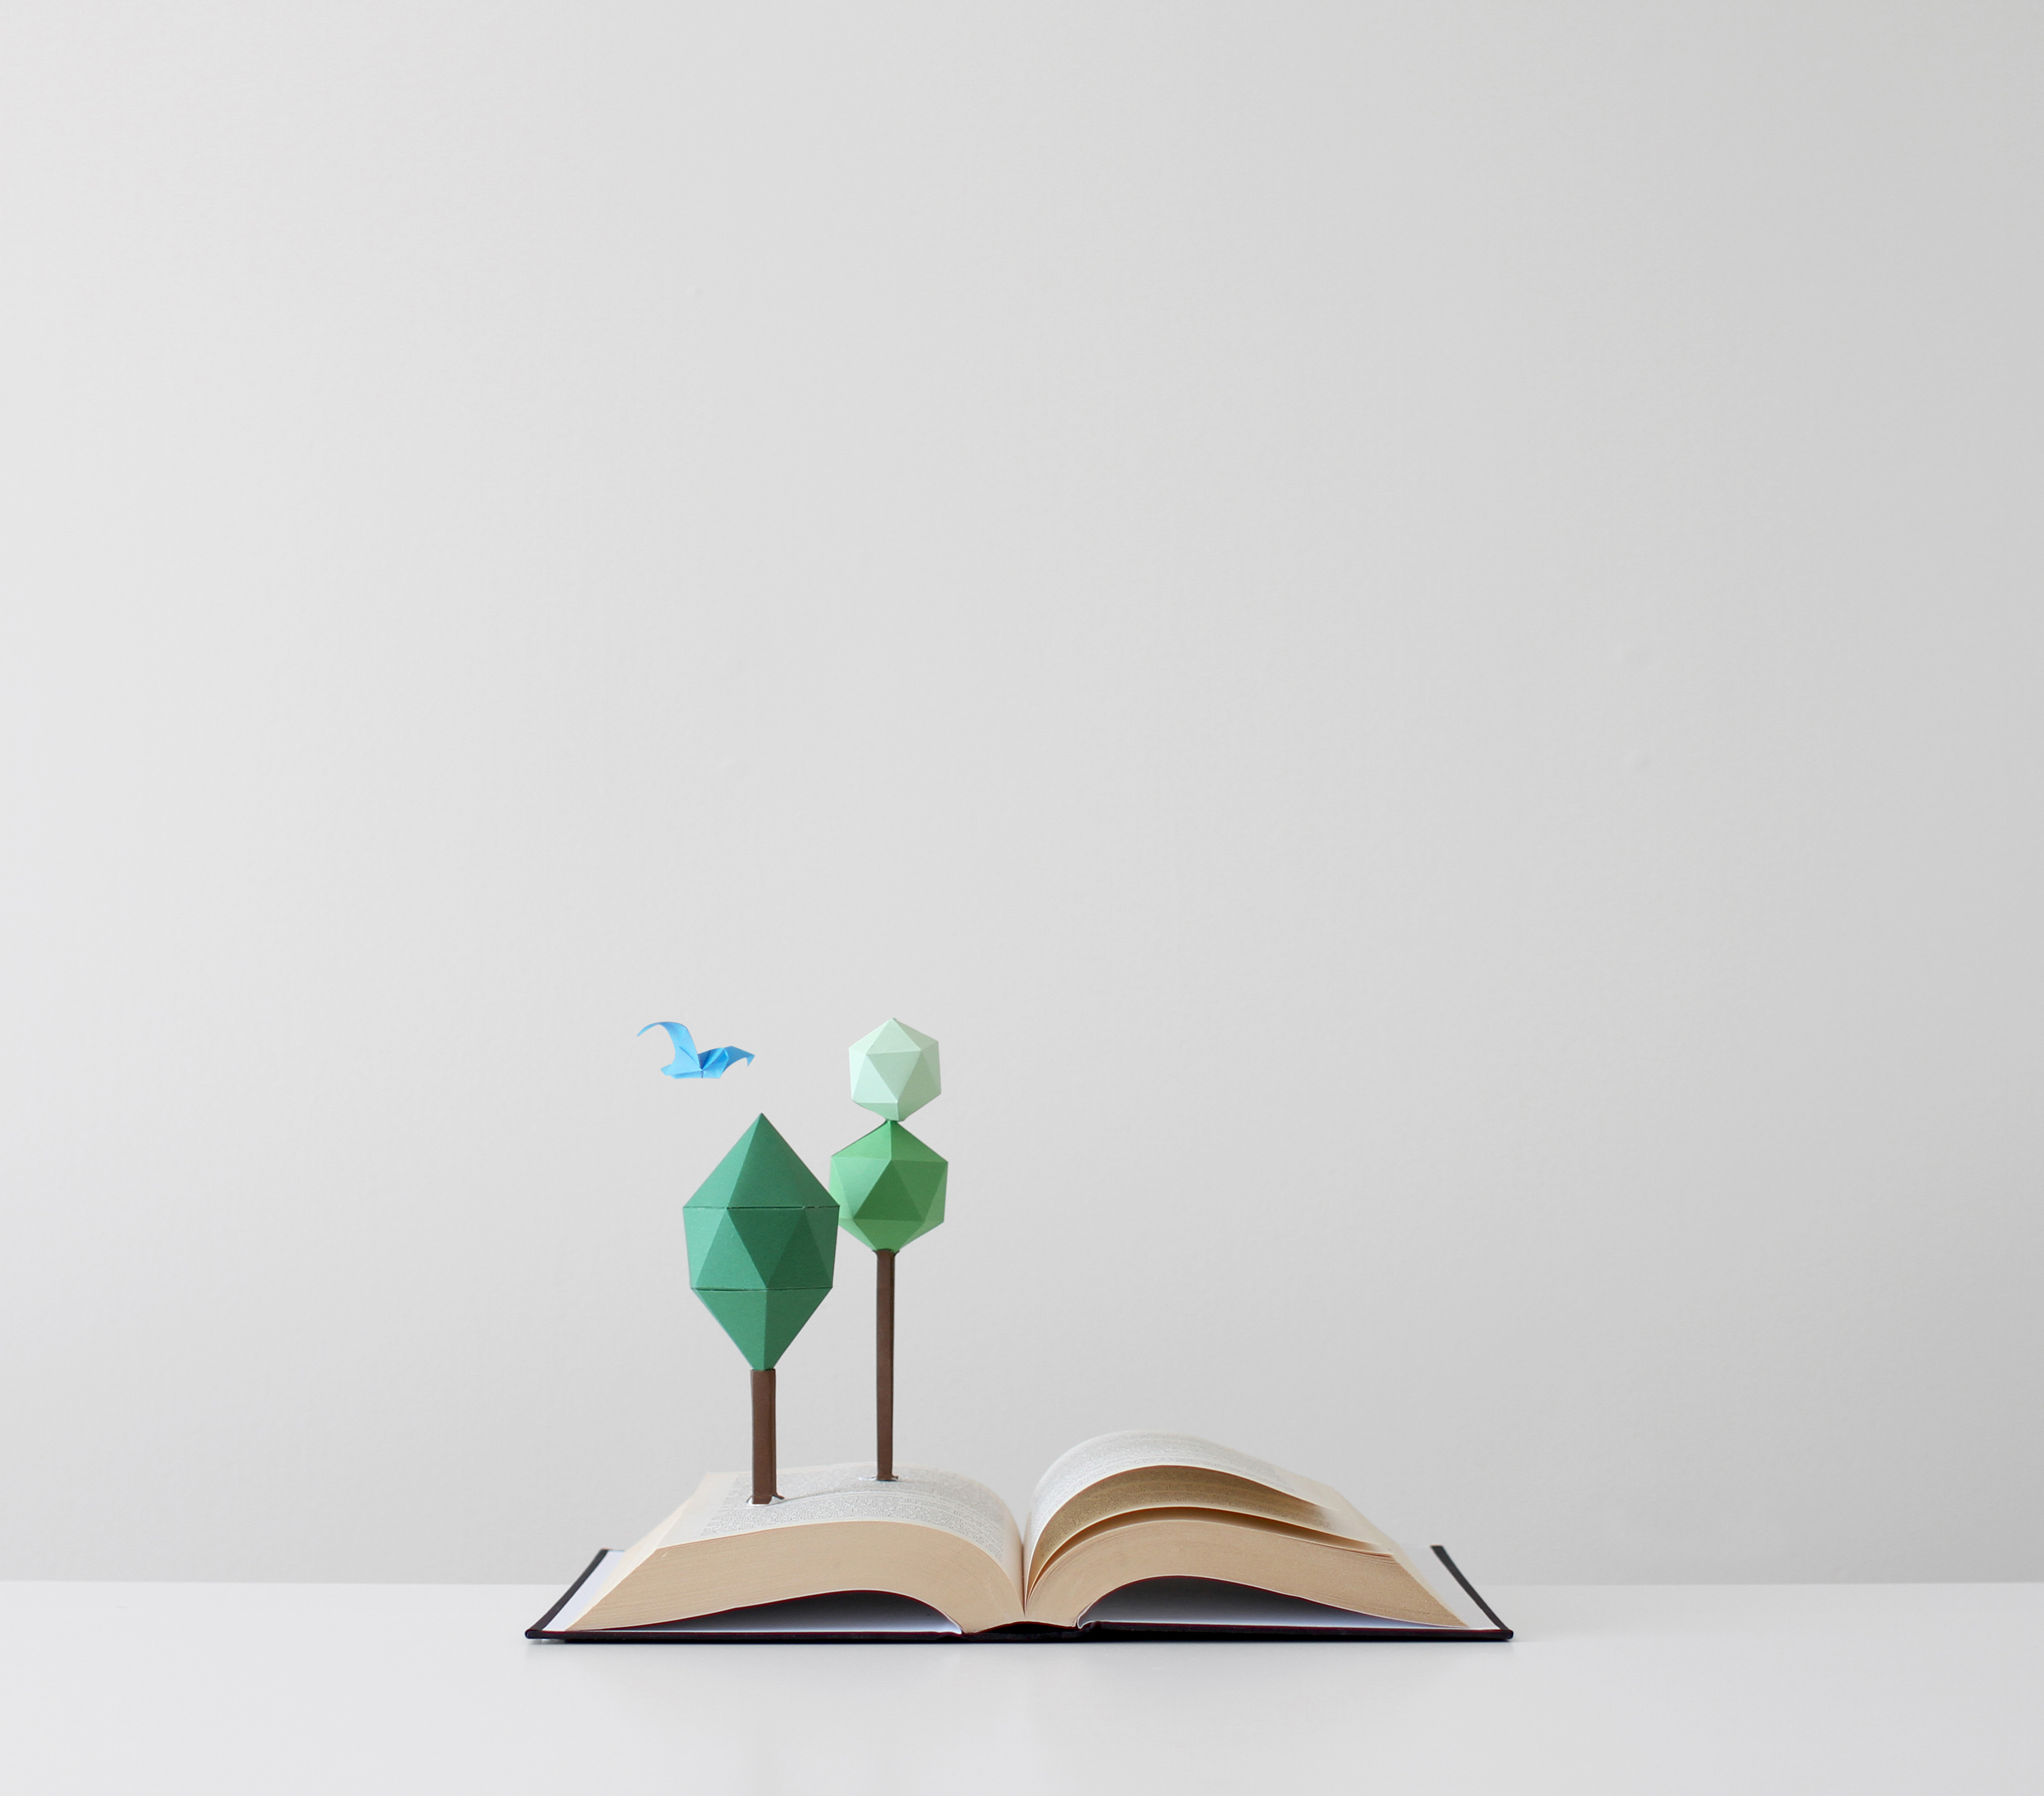 Paper made trees and bird growing out of an open book